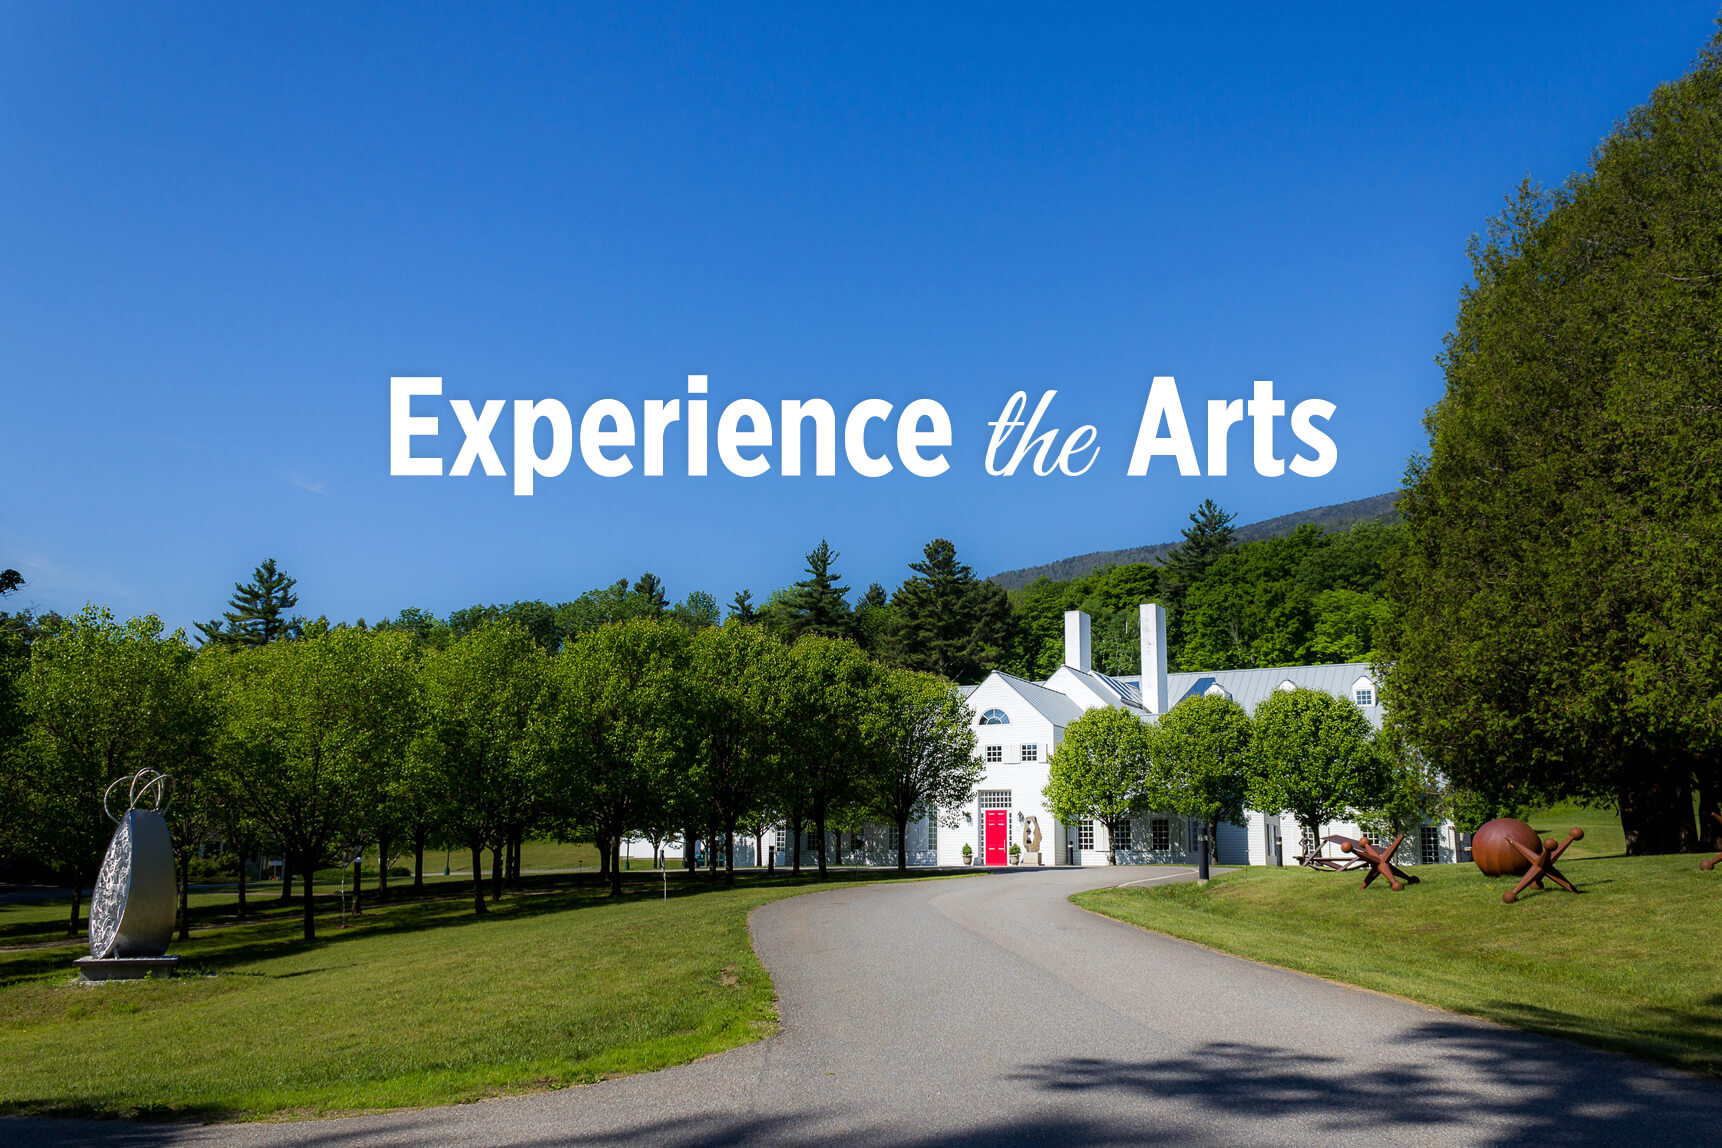 Experience the Arts